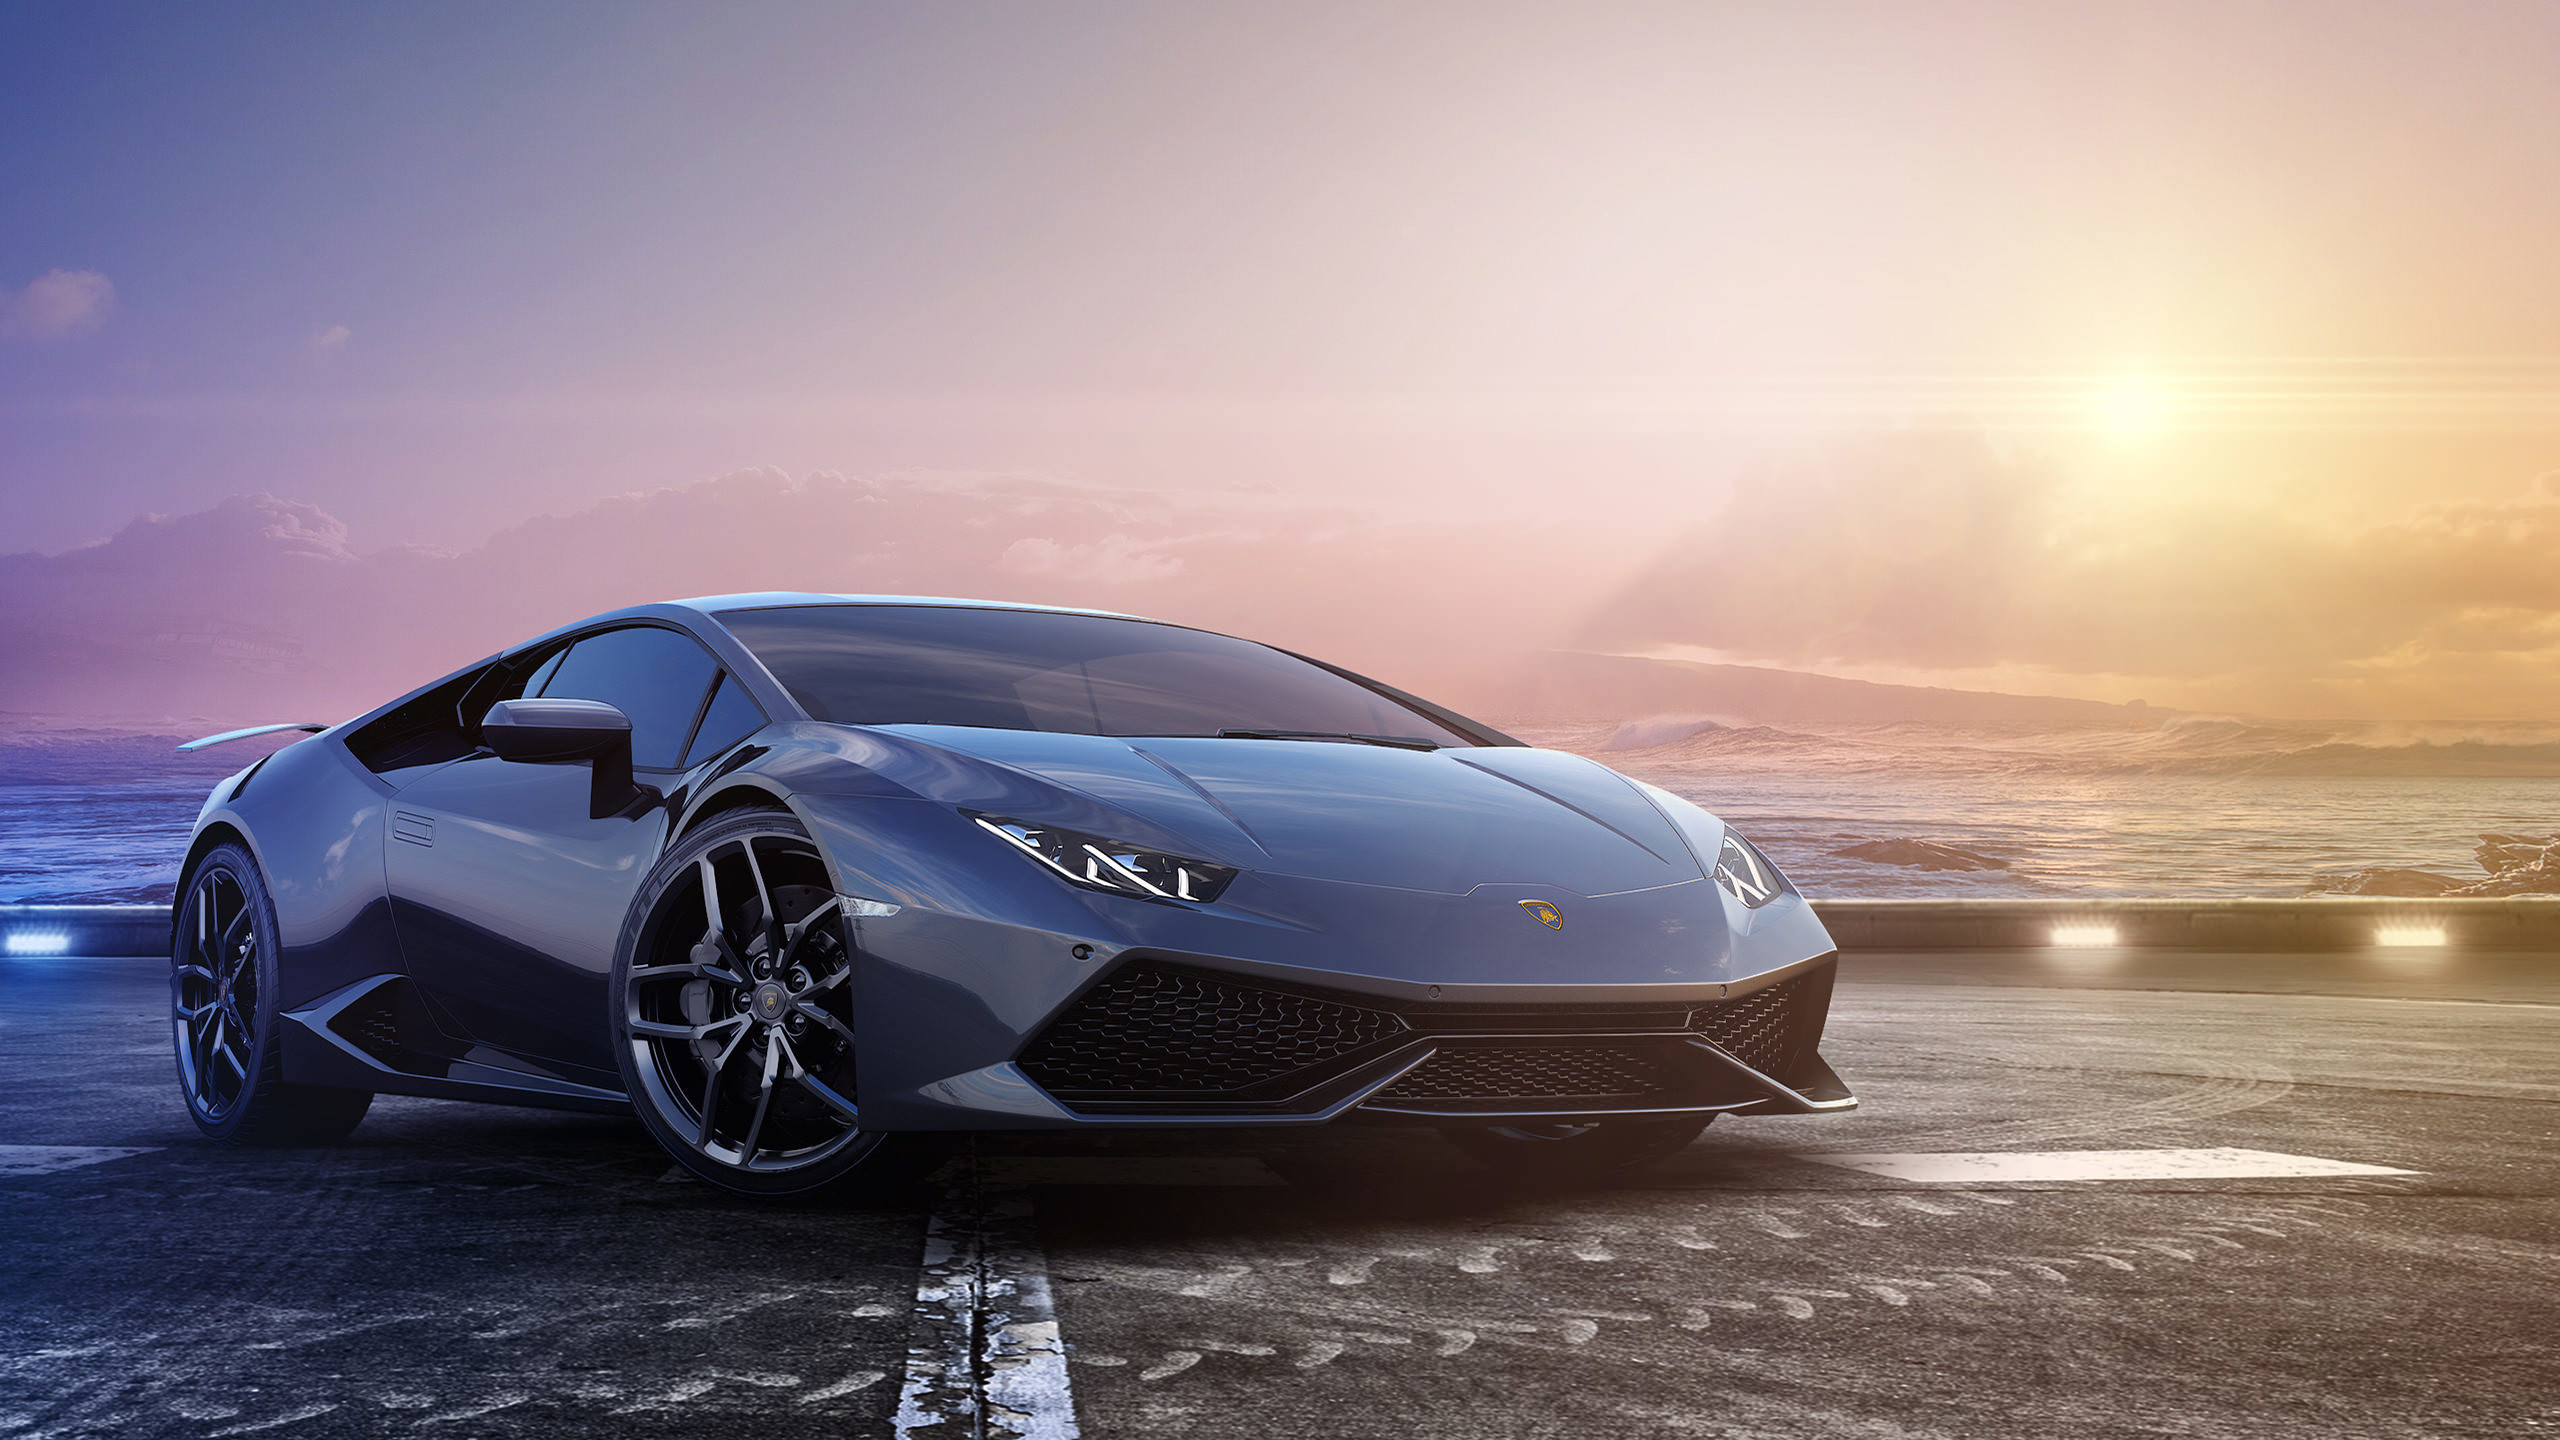 Res: 2560x1440, Lamborghini Wallpaper